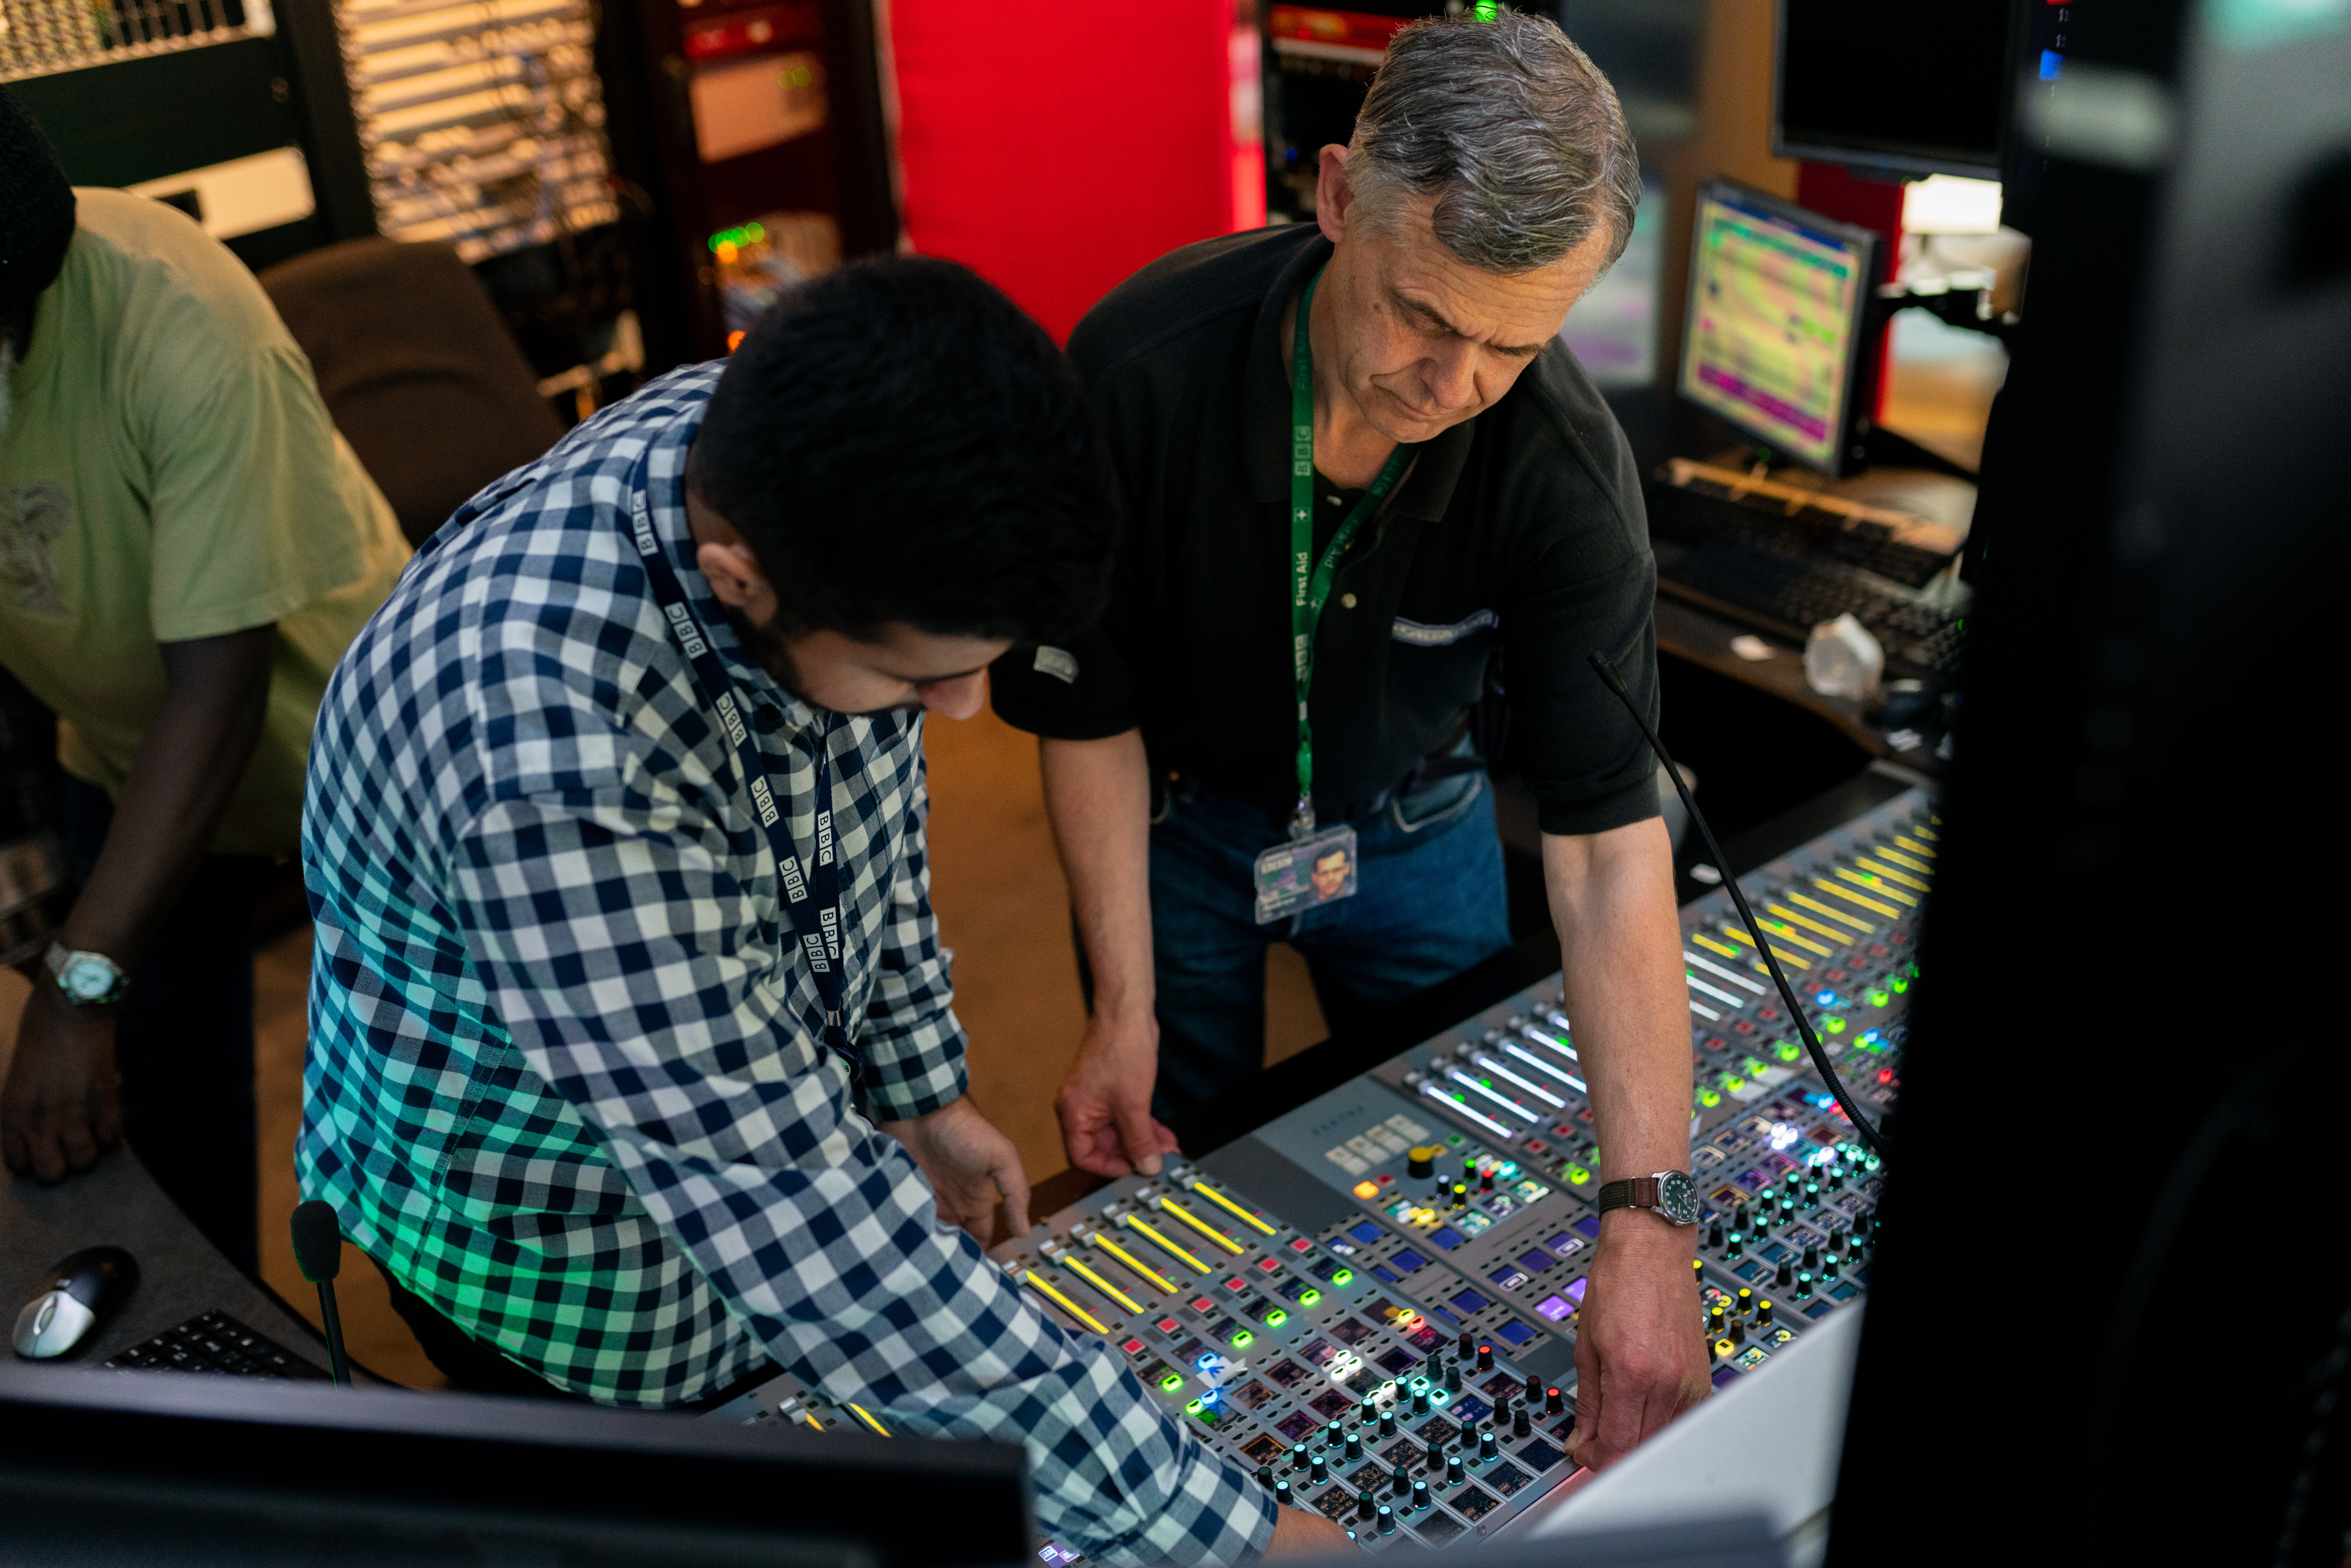 Two sound engineers who work for Emmis Communications